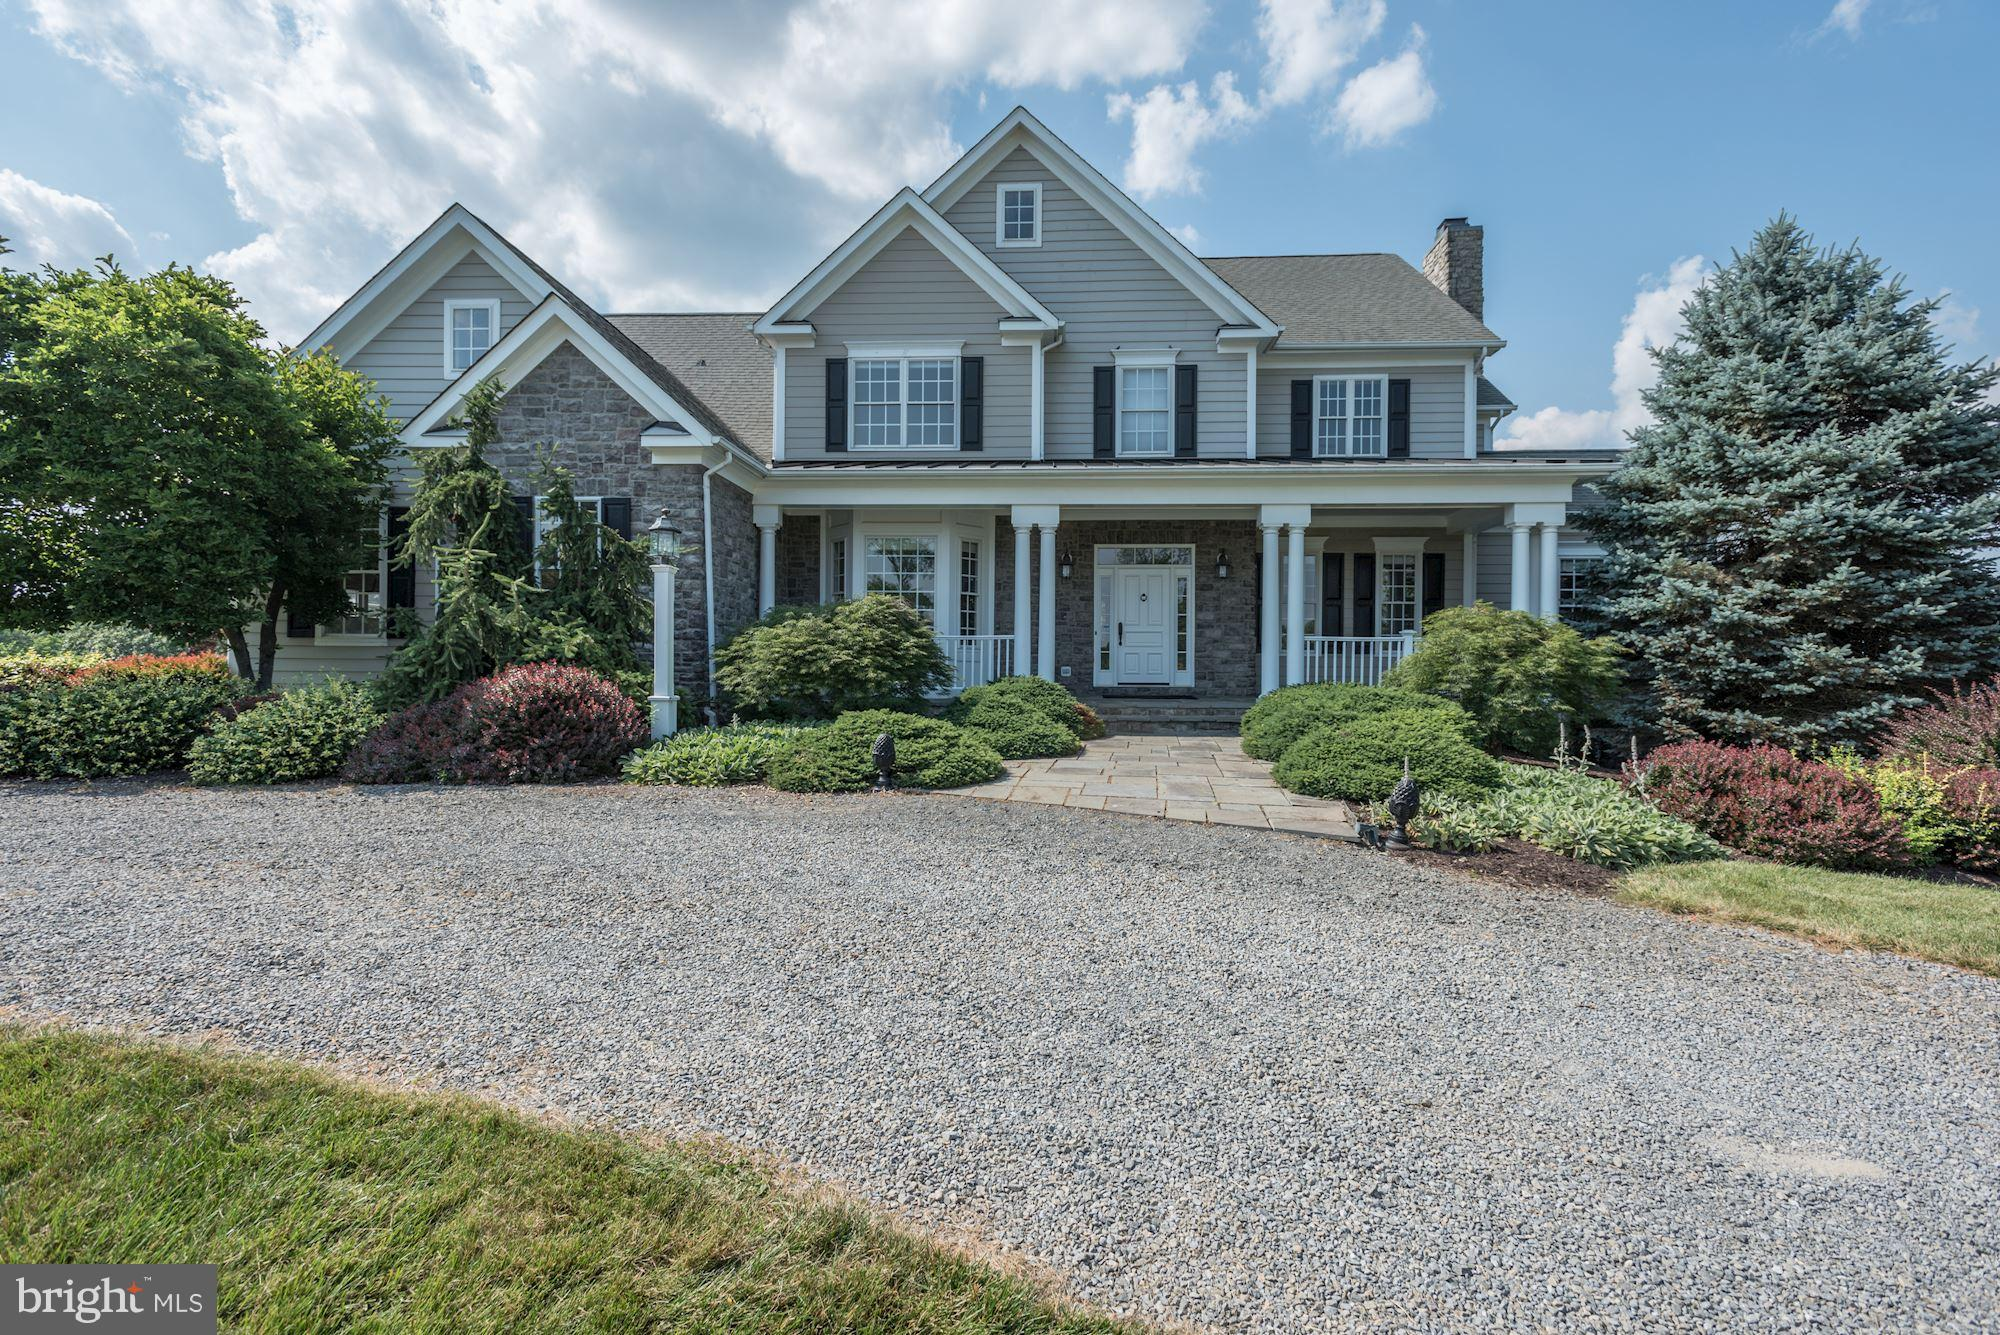 Retreat from the city to this gorgeous 5 BR/4.5 BA farmhouse on 10 acres of countryside in Waterford w stunning views! Family living at its finest w 5500+ sf of living space w/ an open floor plan, light-filled rooms, 3 fp's, built-ins, and wonderful light.  Large, open chef's kitchen, master BR retreat, oversized 3 car garage, updated systems, covered front porch + rear deck